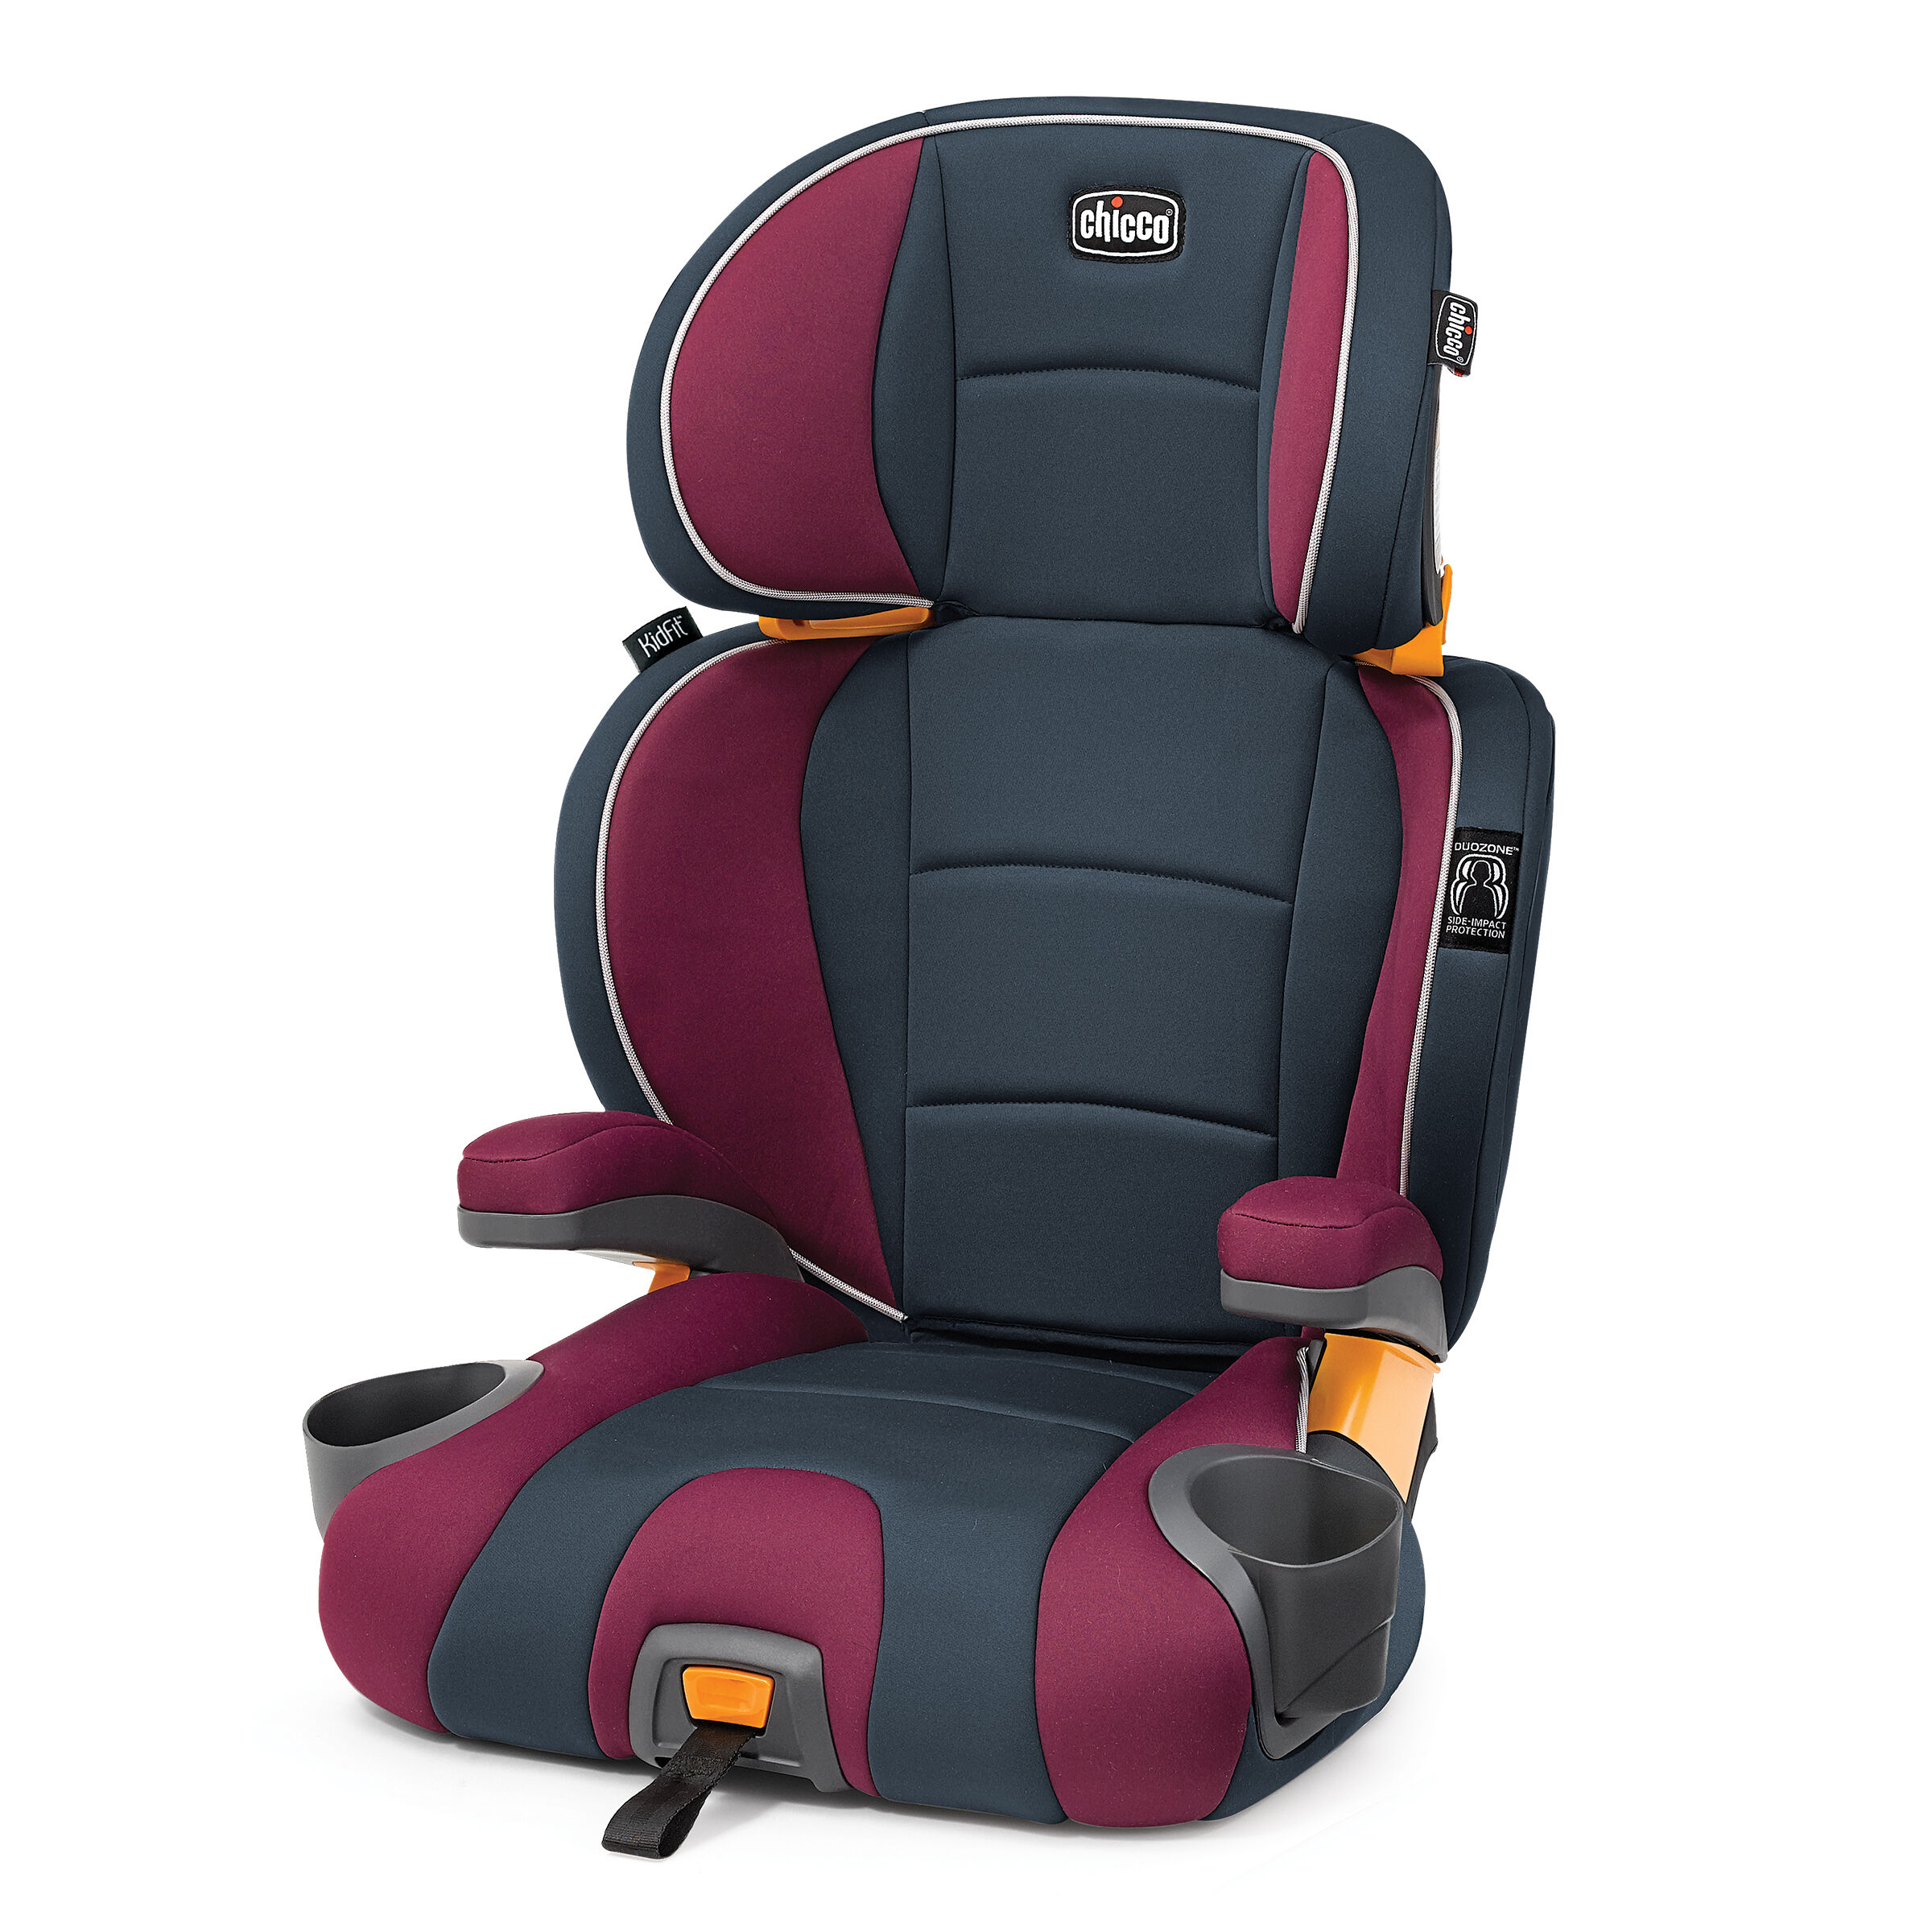 Chair Booster Chicco Kidfit 2 In1 Belt Positioning Booster Seat